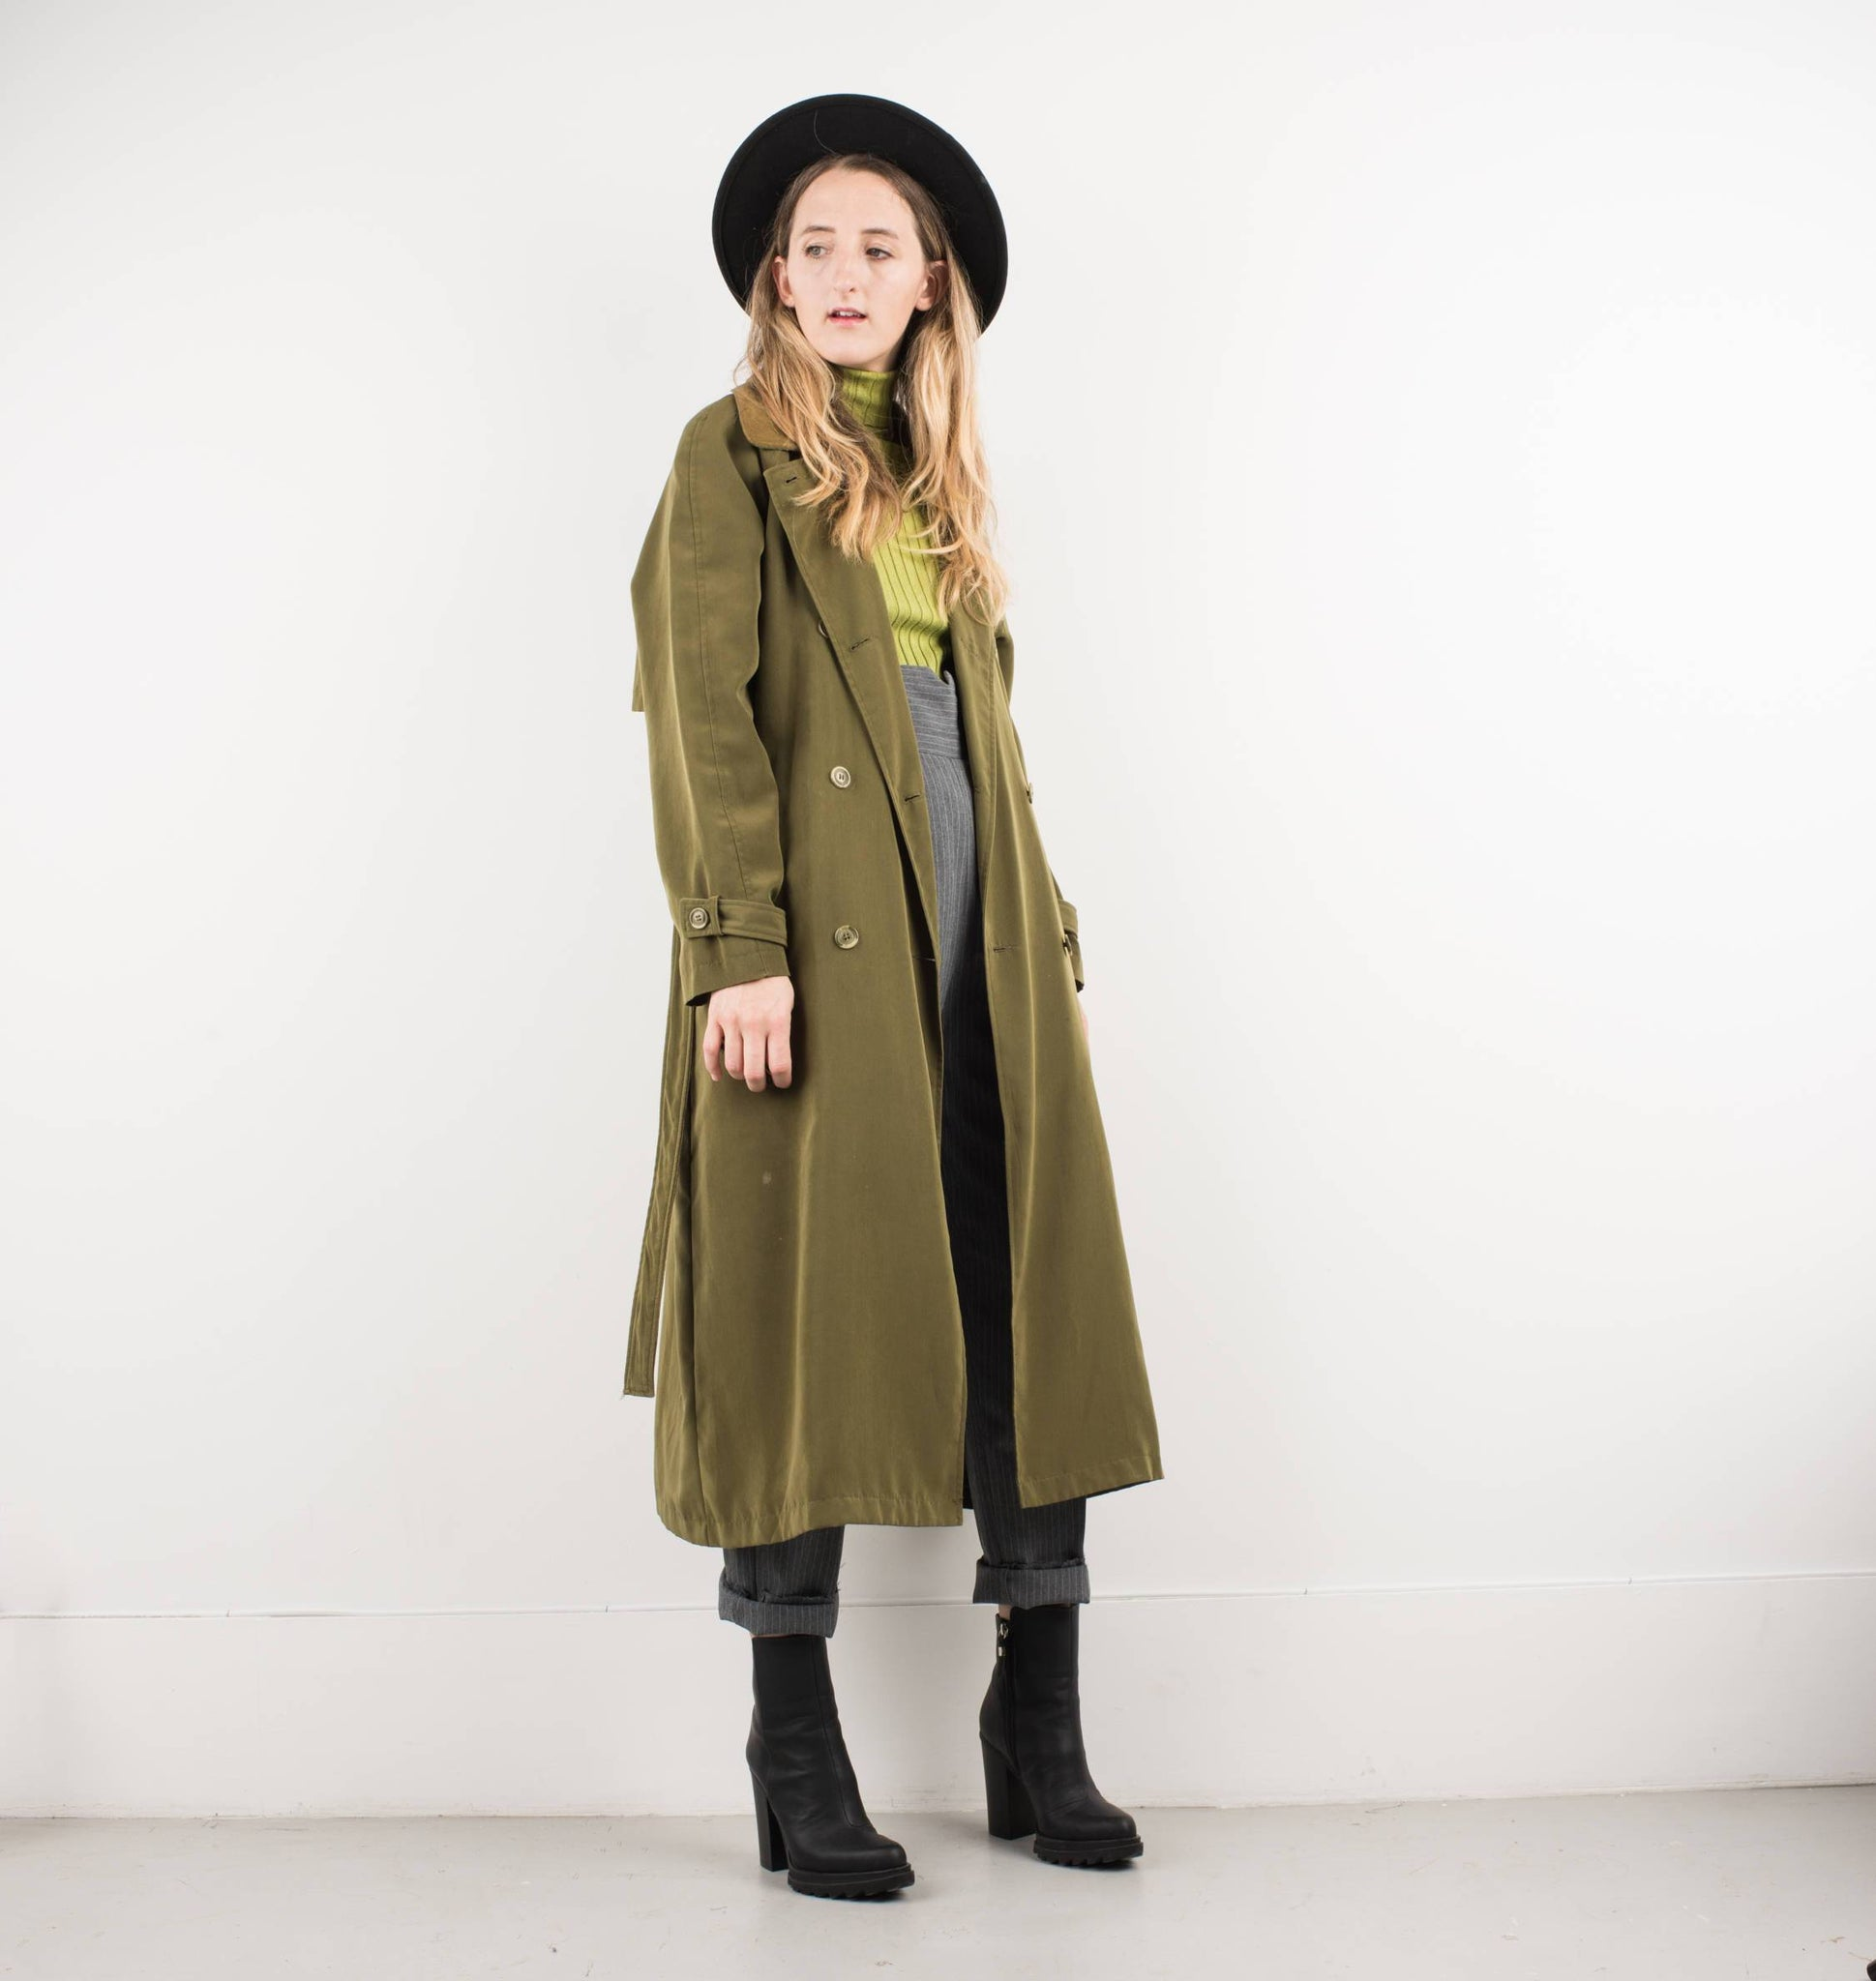 Vintage Olive Green Trench Coat with Suede Collar and Belt / S - Closed Caption